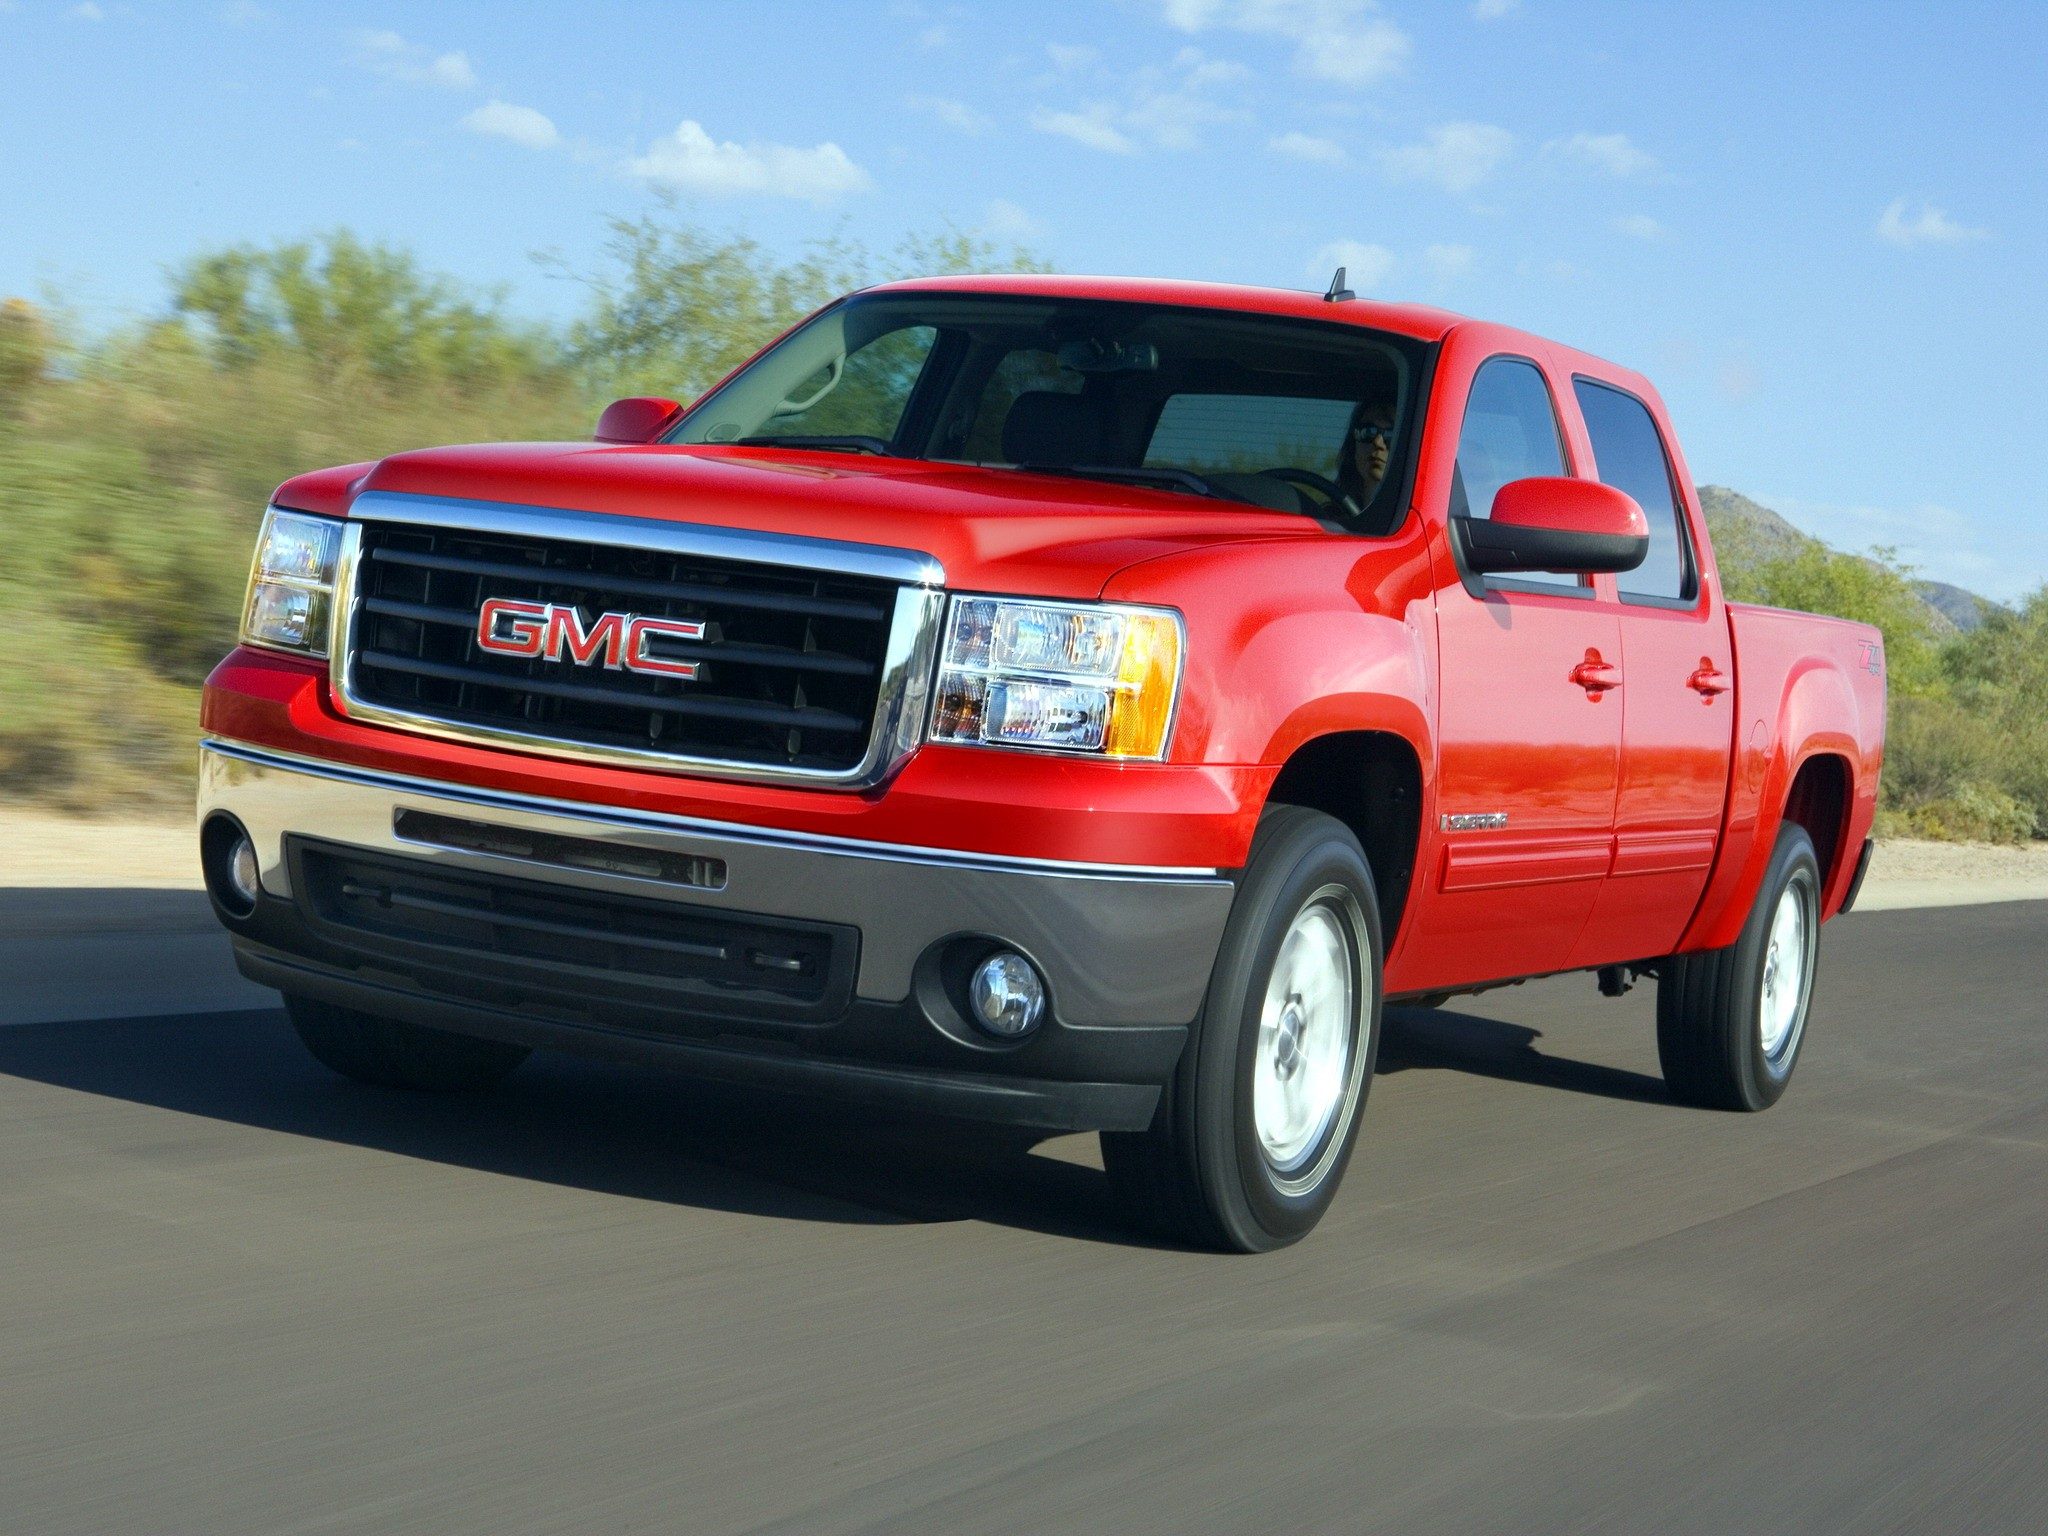 gmc sierra 1500 crew cab specs 2008 2009 2010 2011 2012 2013 autoevolution. Black Bedroom Furniture Sets. Home Design Ideas